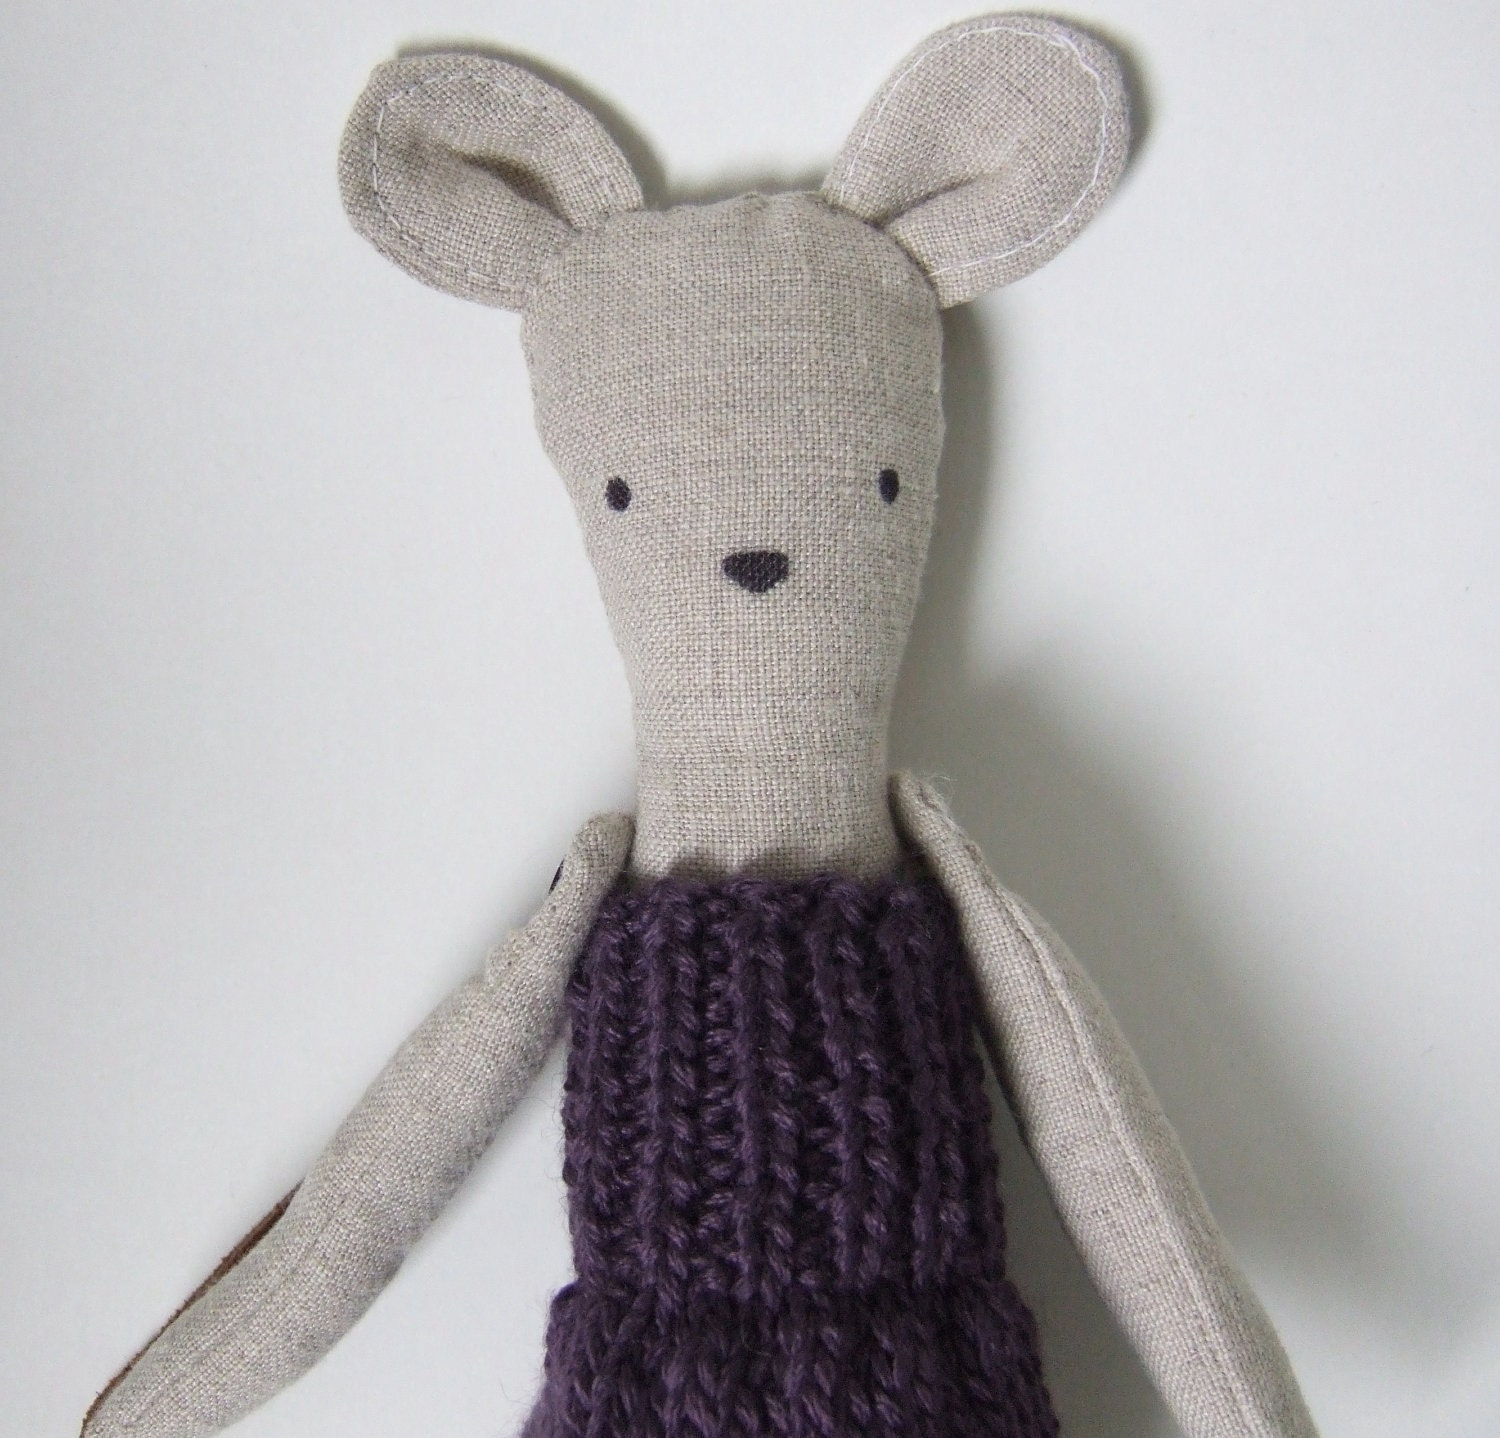 Penelope the linen mouse doll goes to school in her purple knit dress. - mimiandlu